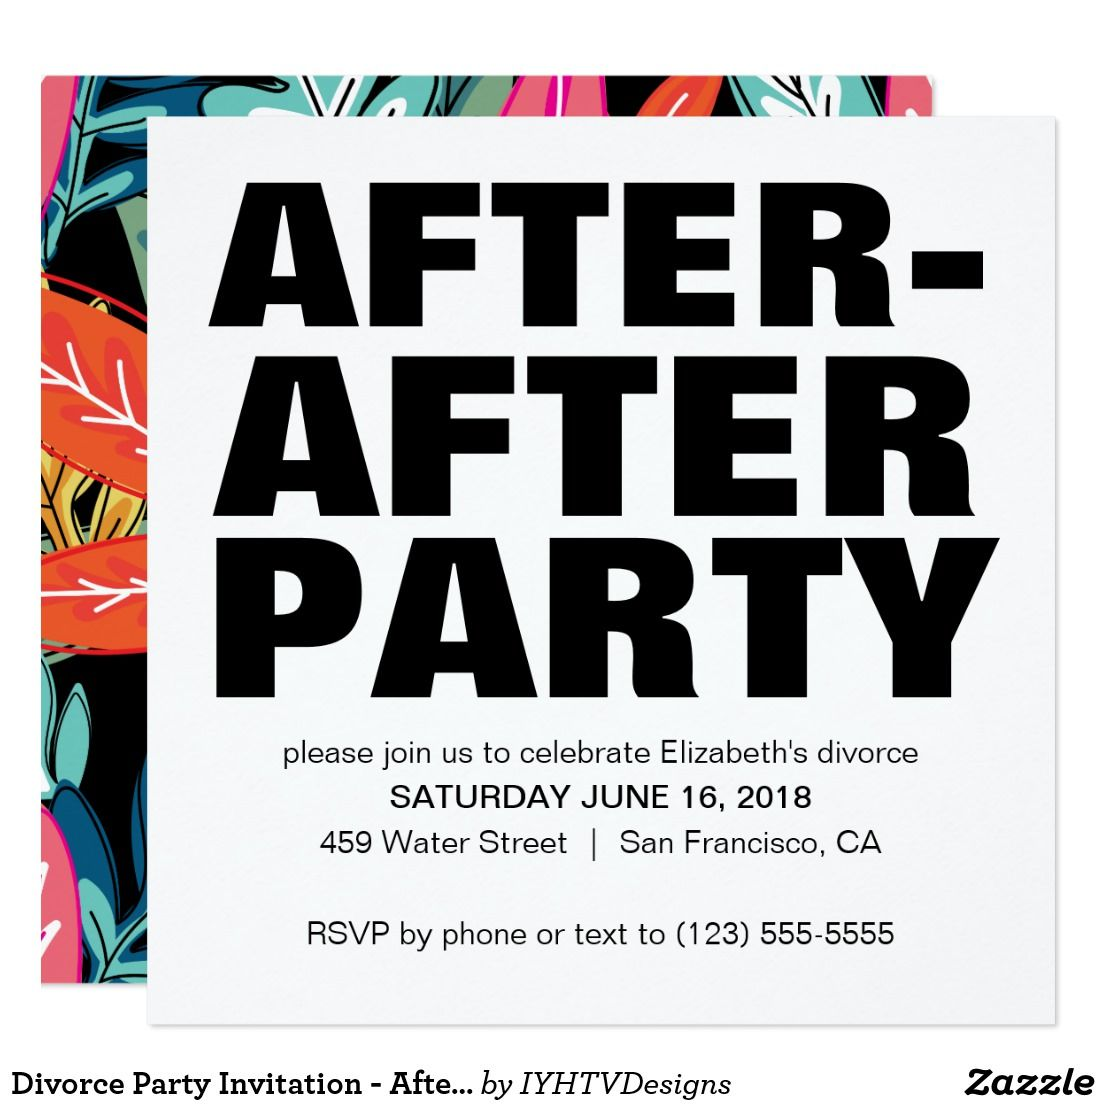 Divorce Party Invitation - After After Party | Divorce party and ...